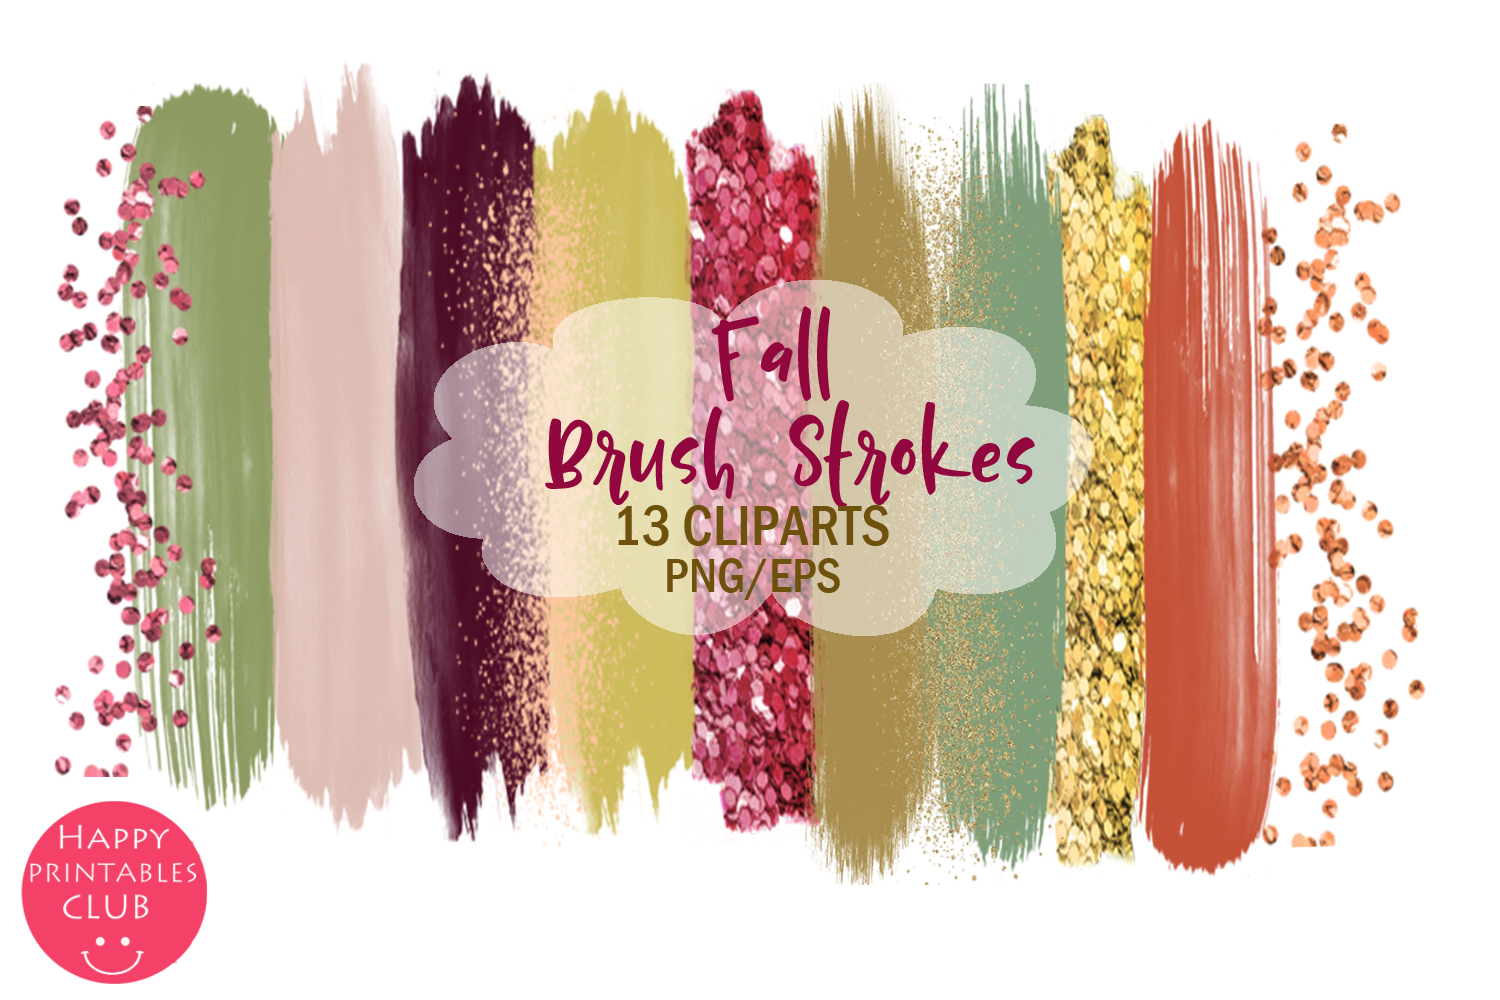 Fall Brush Strokes Clipart- Brush Strokes Clipart example image 1